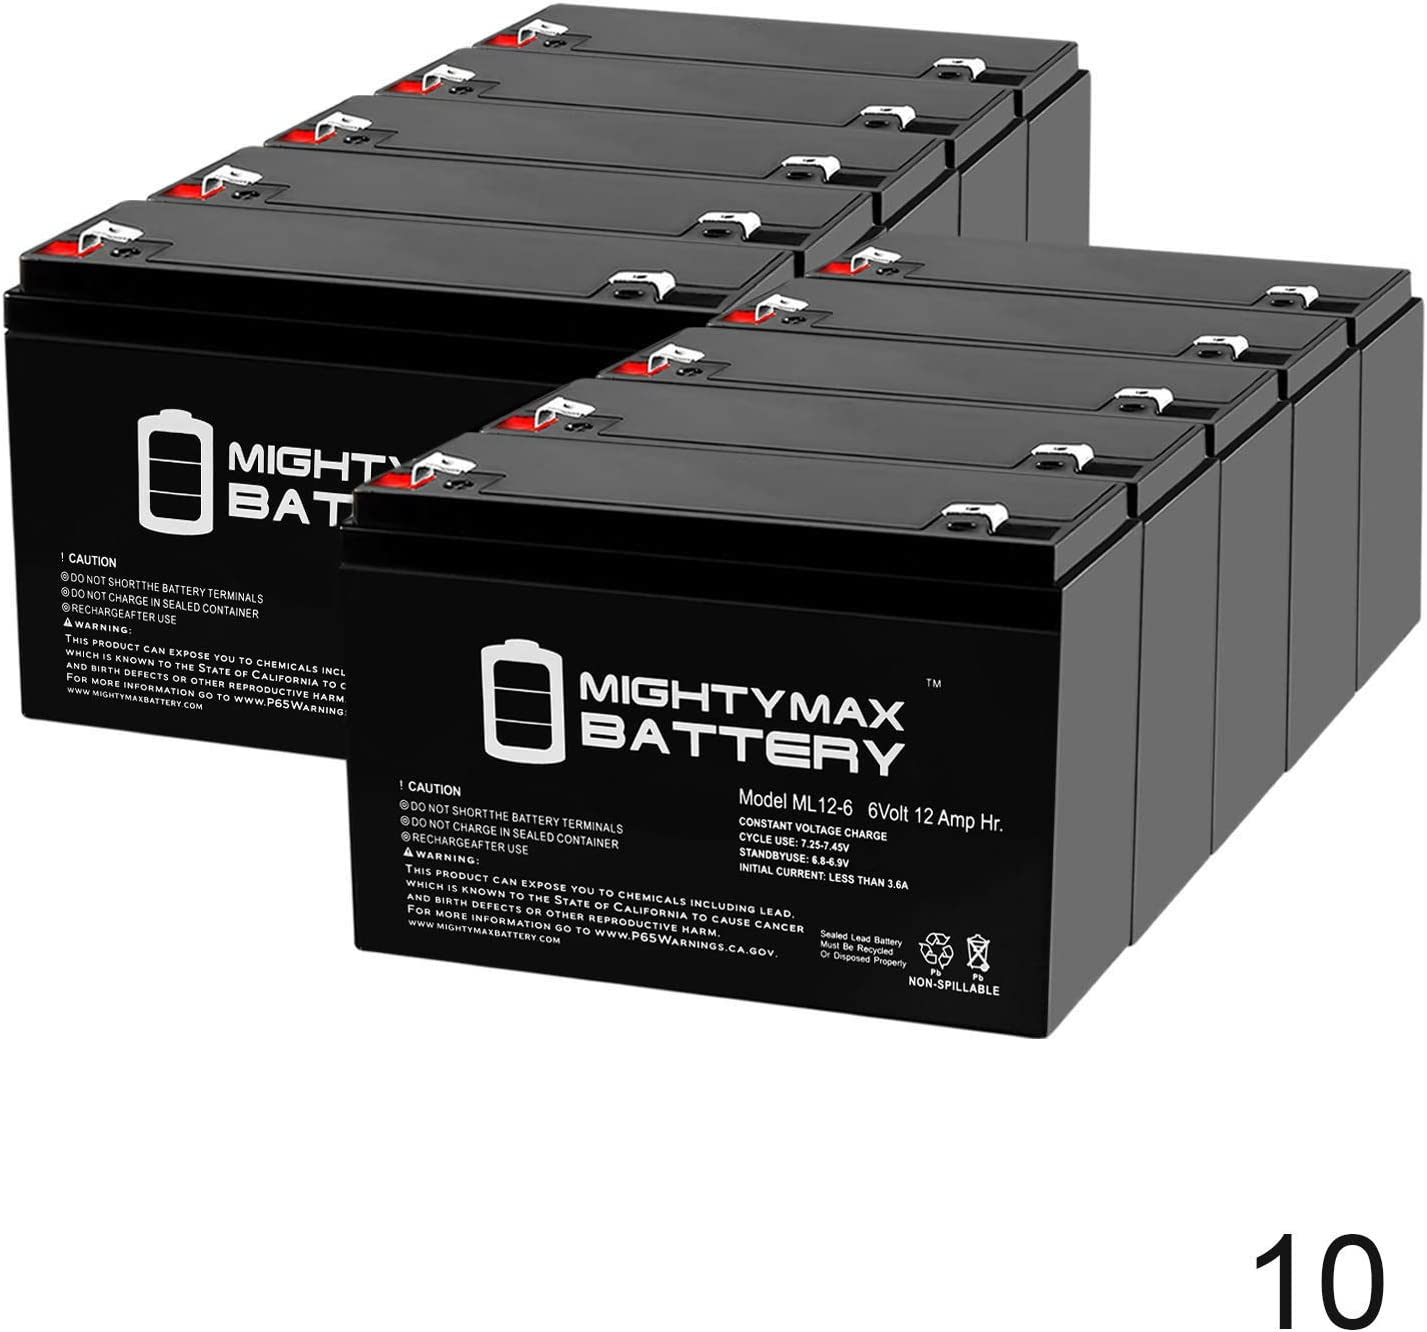 6V 12AH Battery Replaces 10ah Enduring 3FM10 T2 3-FM-10 T2-10 Pack Brand Product Mighty Max Battery ML12-6 .250TT